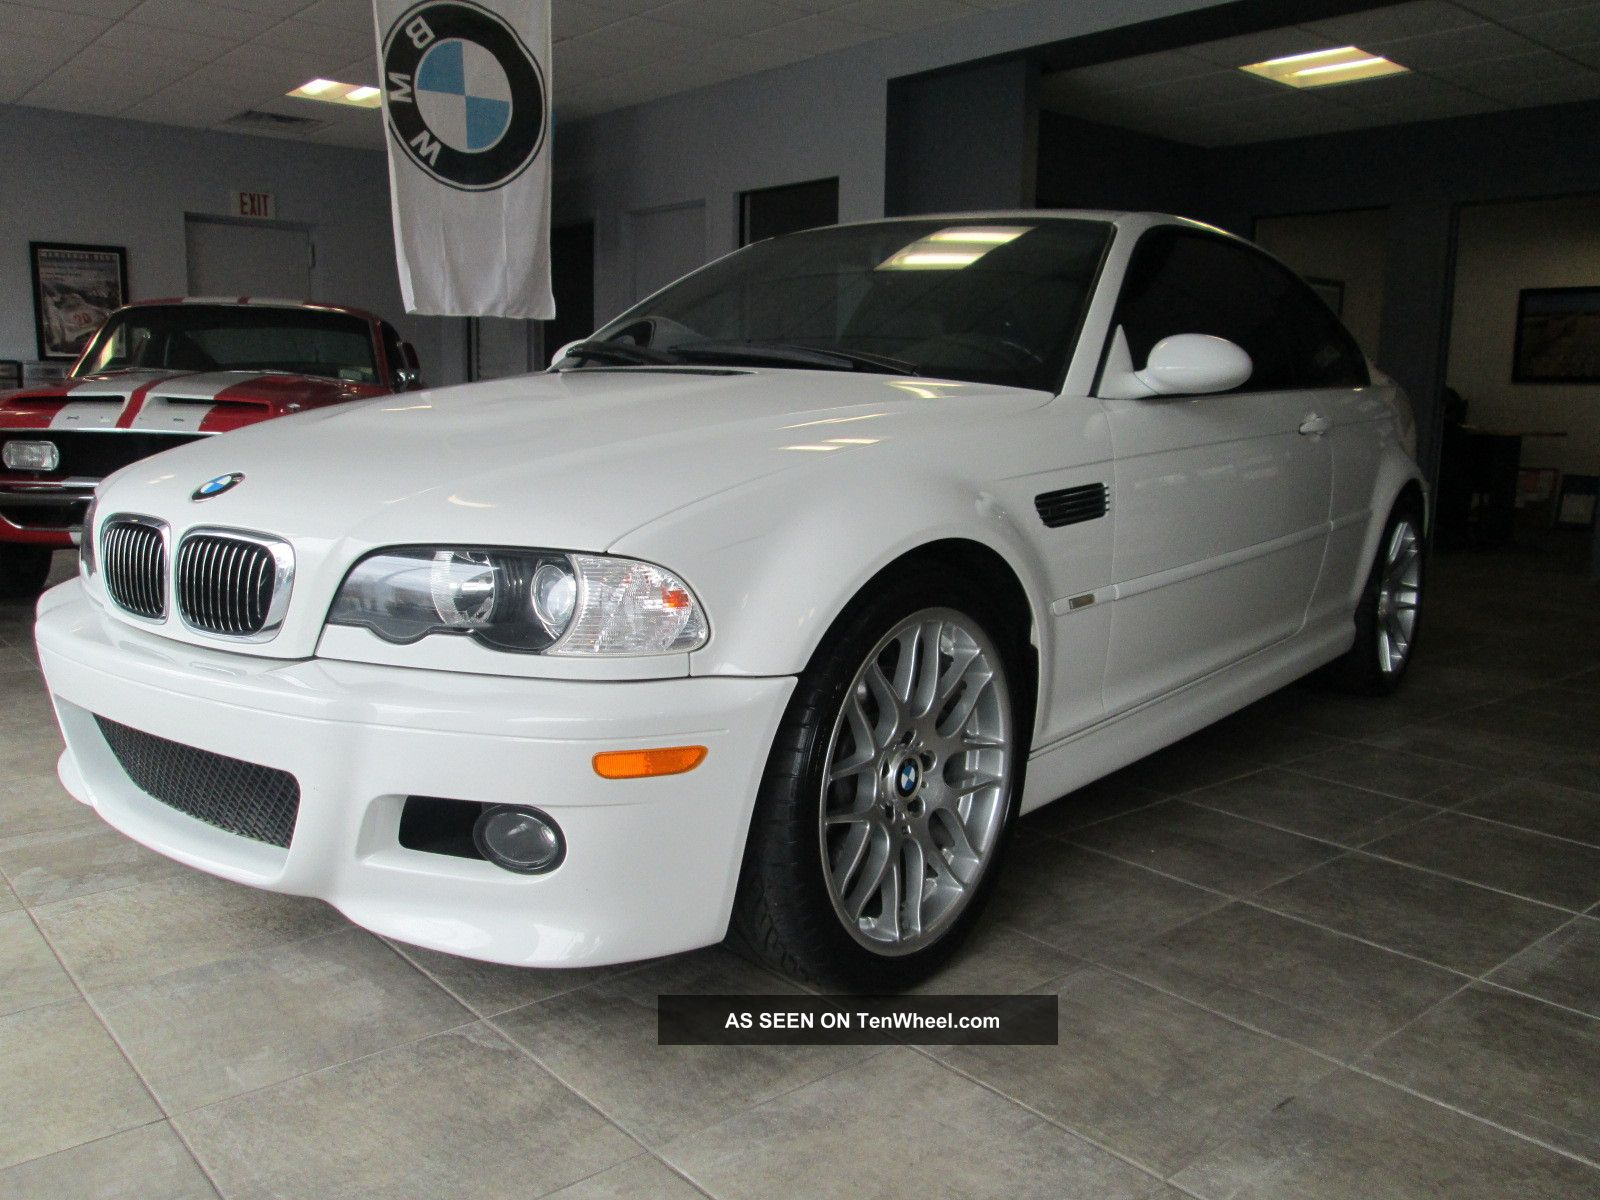 2002 Bmw M3 White Coupe Manual 6 Speed M3 photo